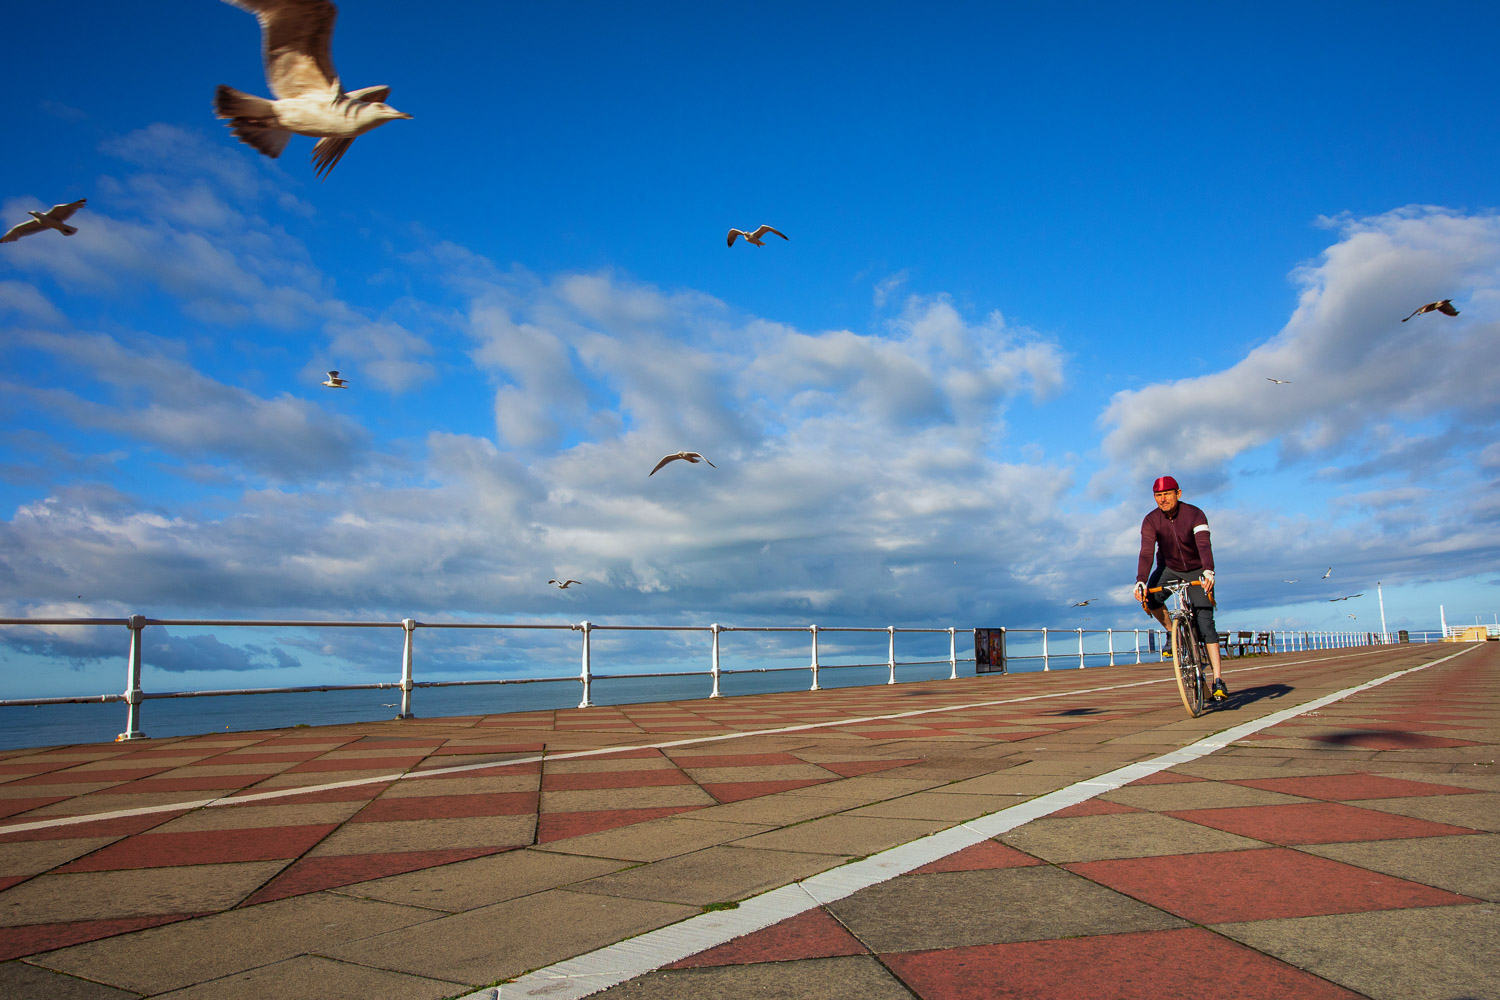 Bicycles in the Landscape:A cyclist spins along the seafront promenade in Hastings early on a bright sunny summer morning with a flock of seagulls wheeling overhead